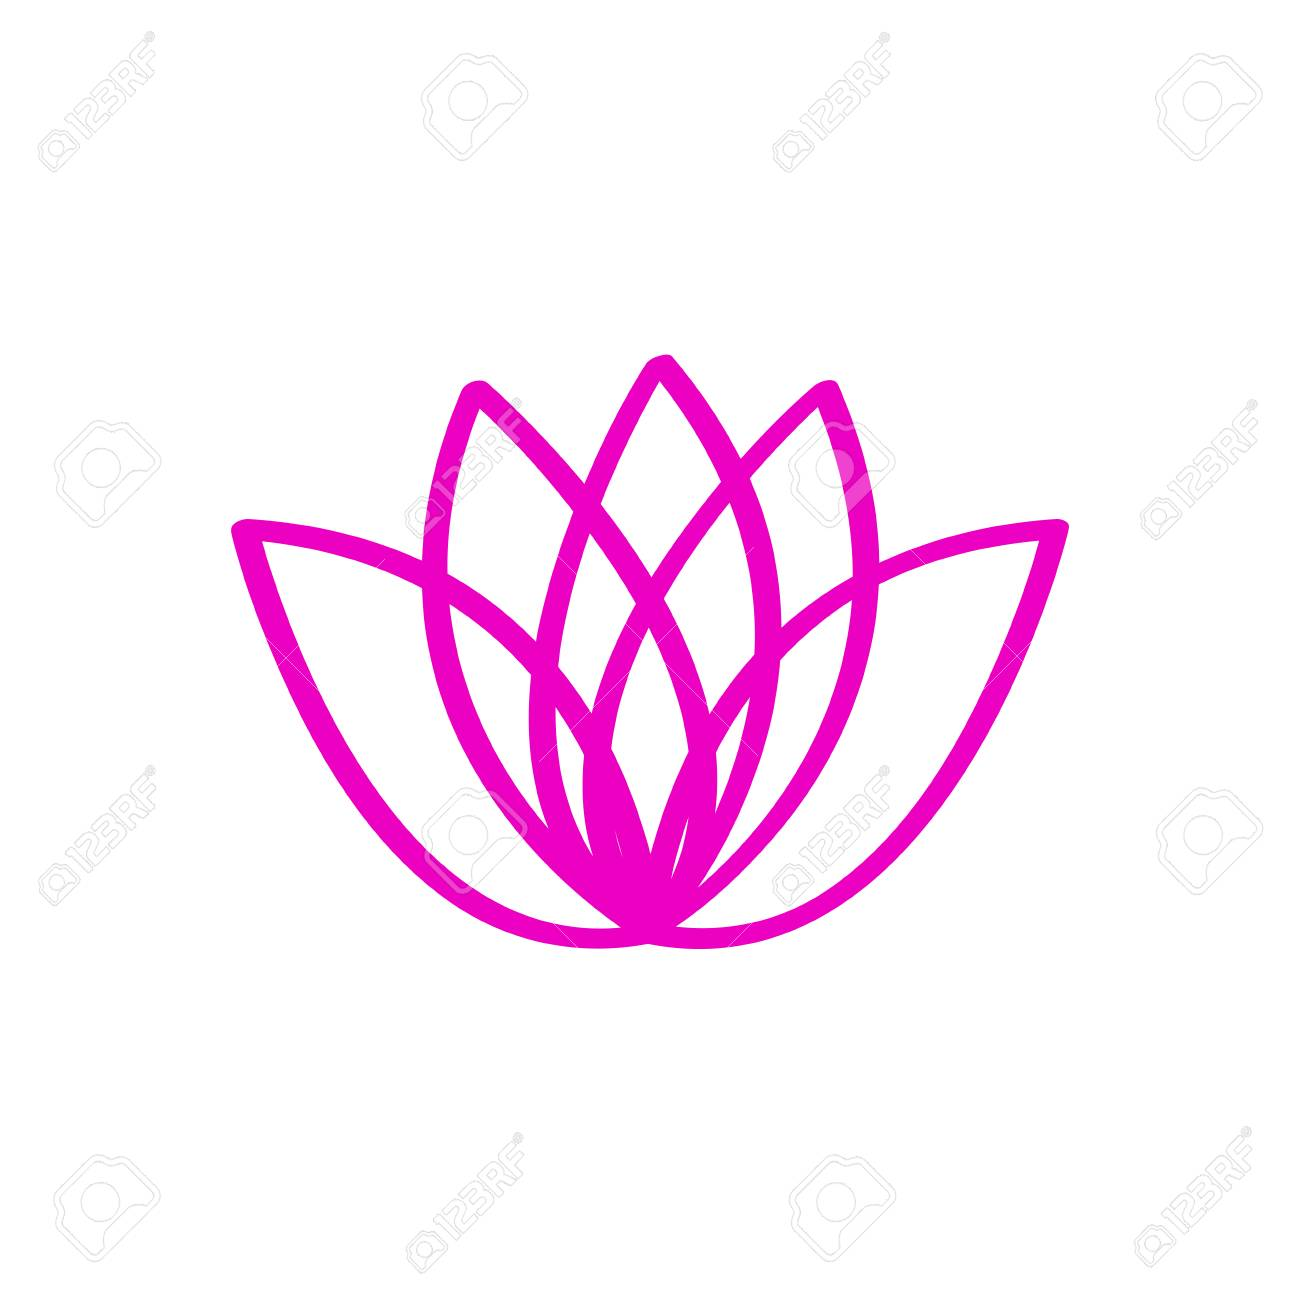 Outline Of A Lotus Flower Royalty Free Cliparts Vectors And Stock